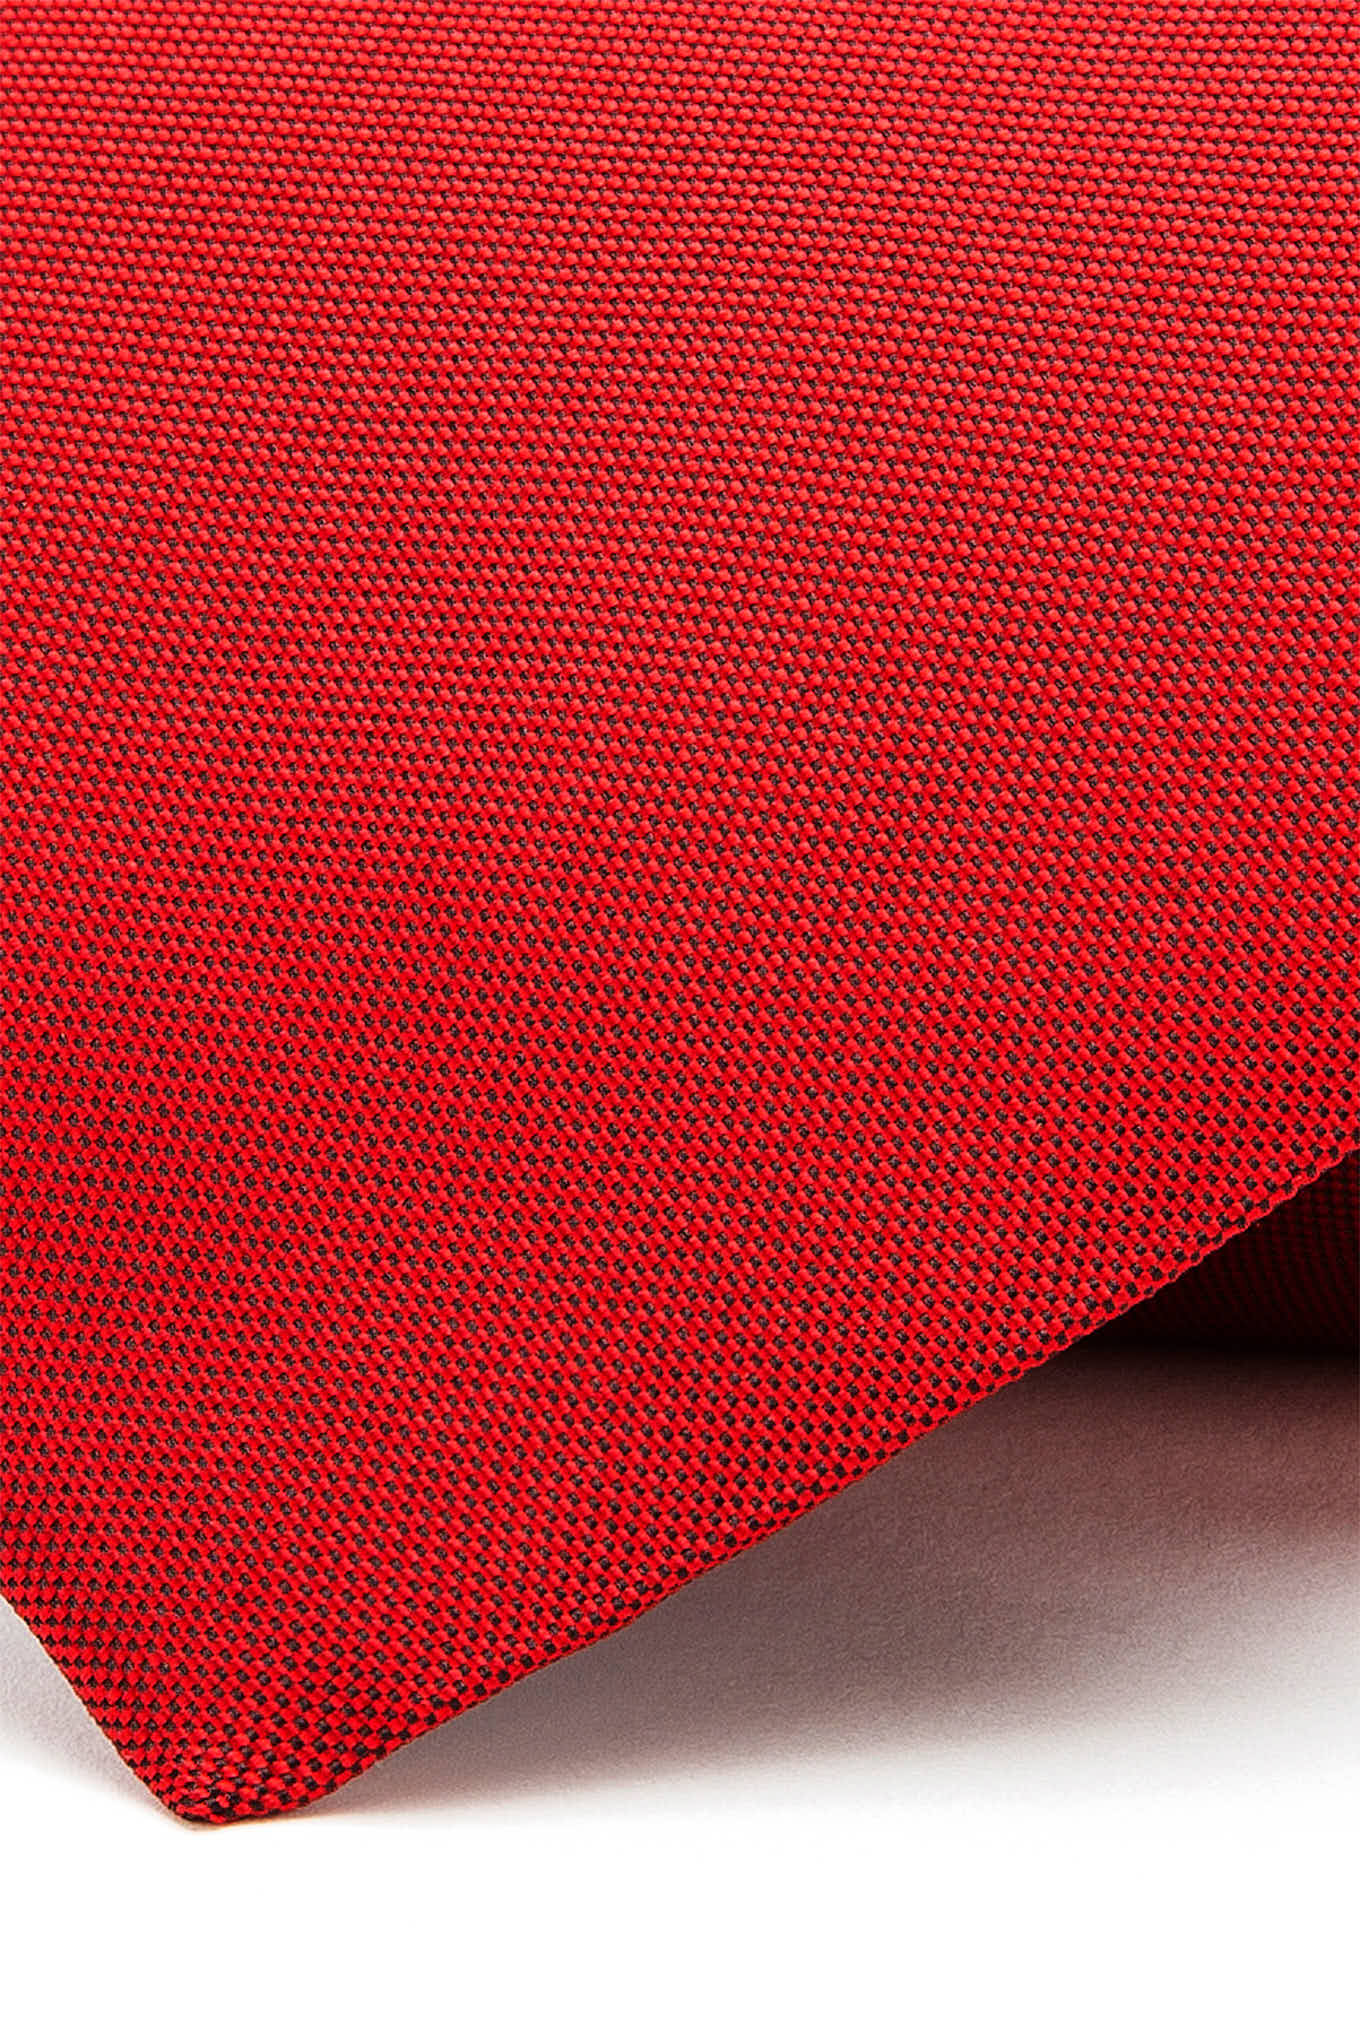 Tie Dark Red Classic Man